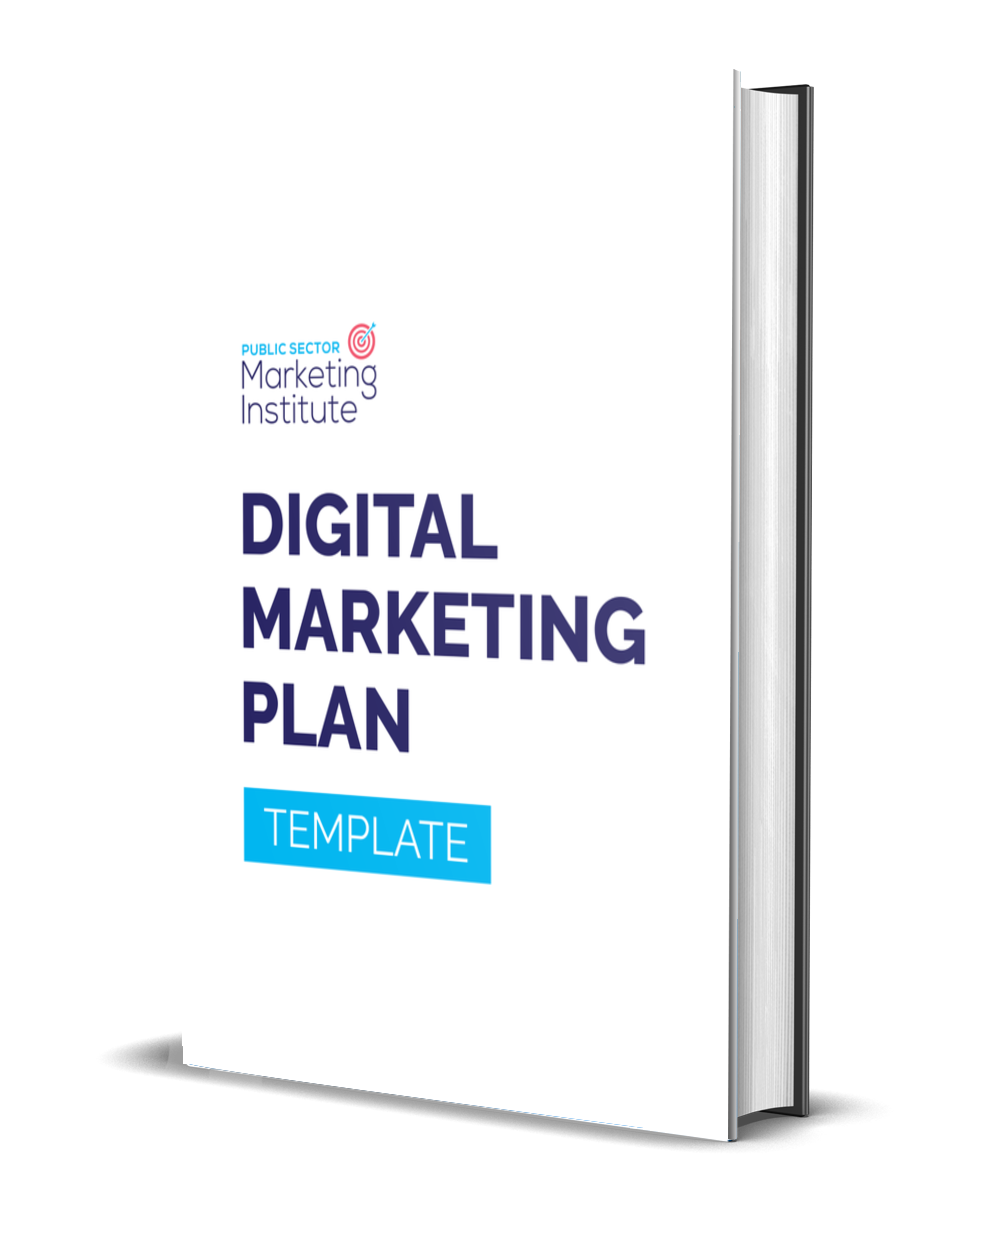 Digital Marketing Plan Template Cover